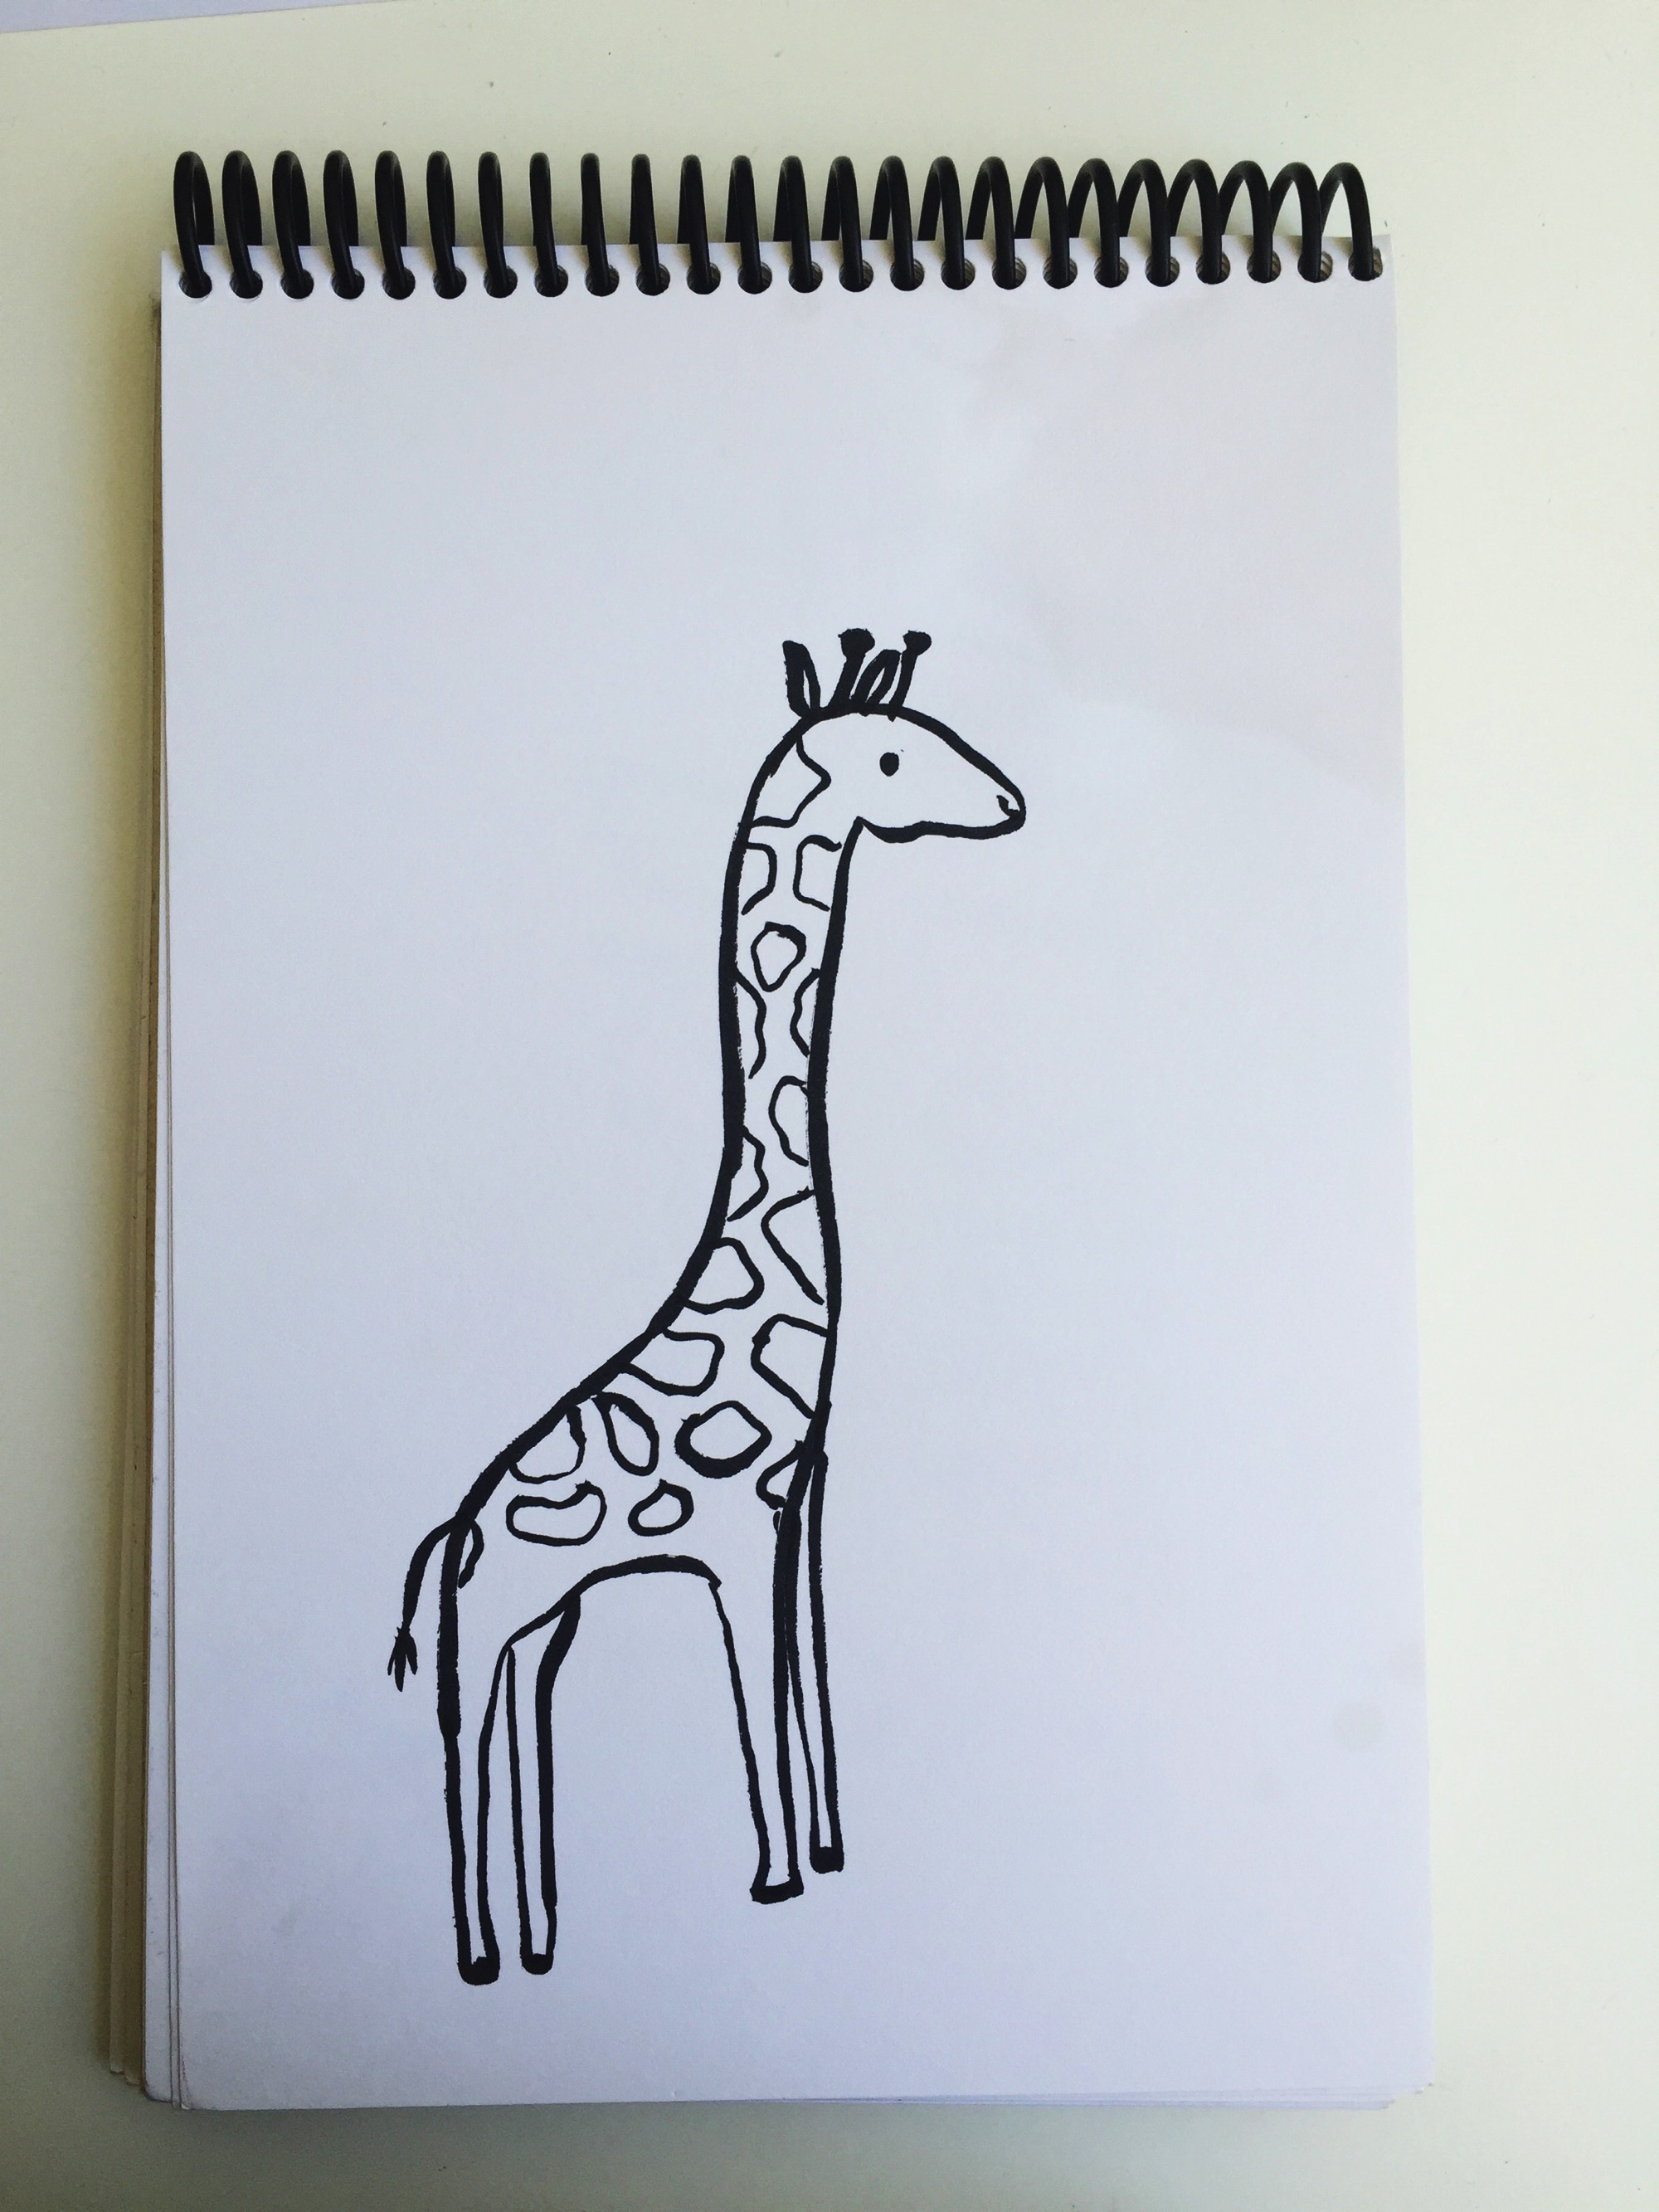 Giraffe by Request by Lisa Bardot